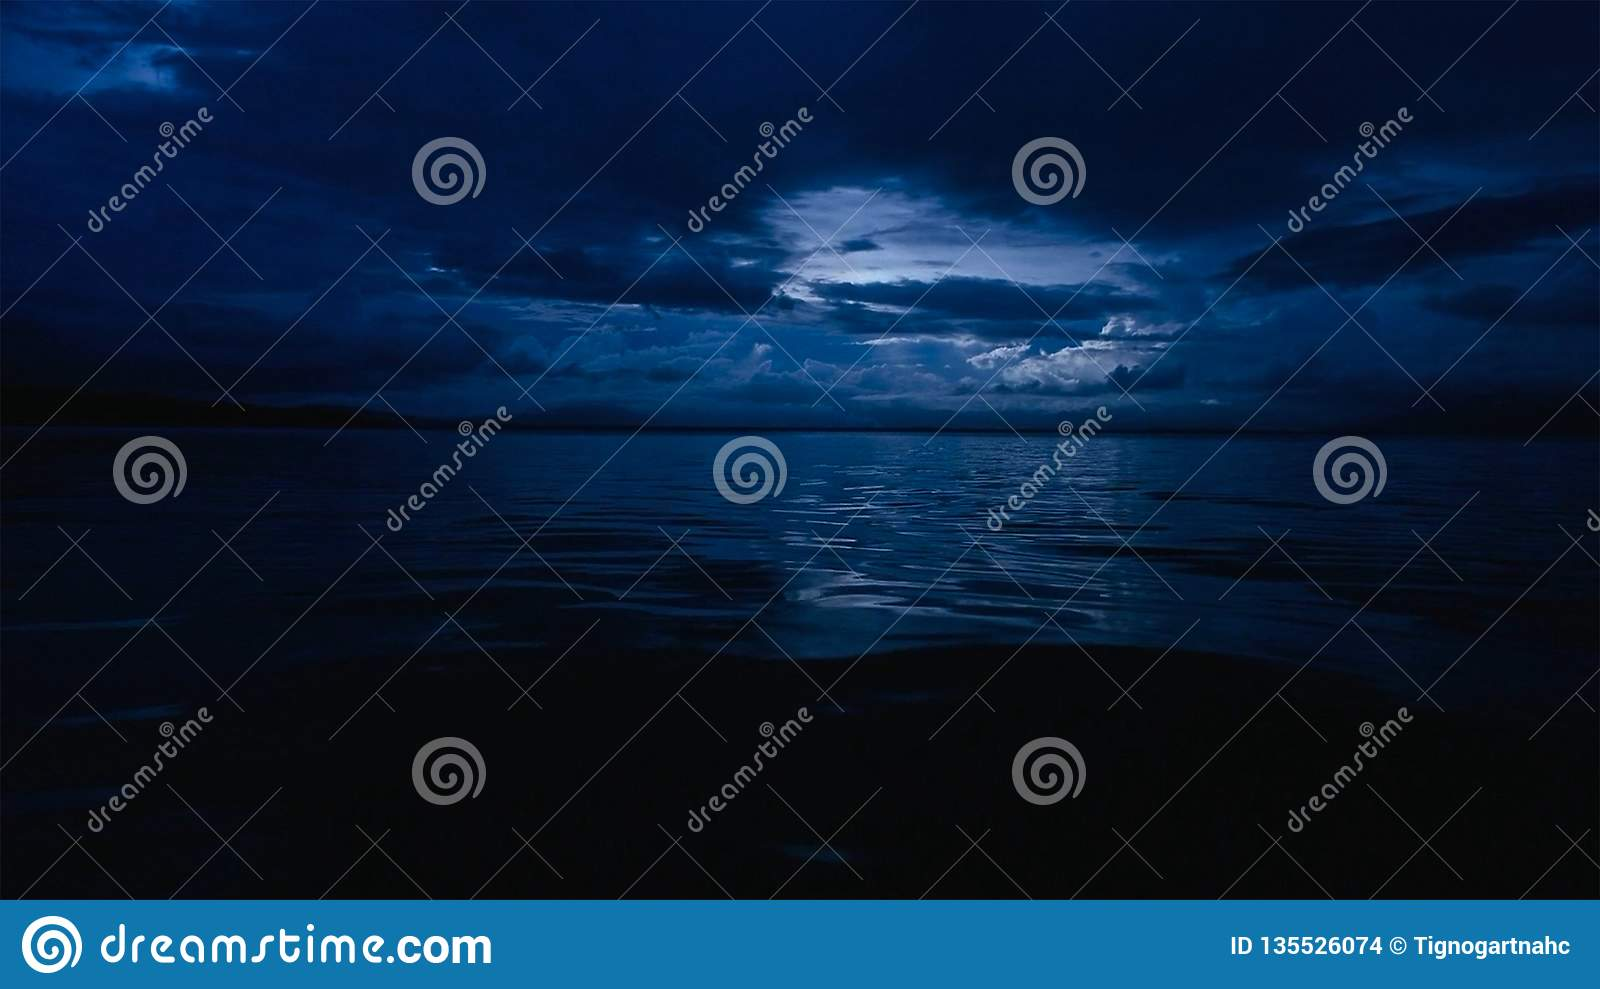 This photo of a deep blue moonlit ocean at night with calm waves